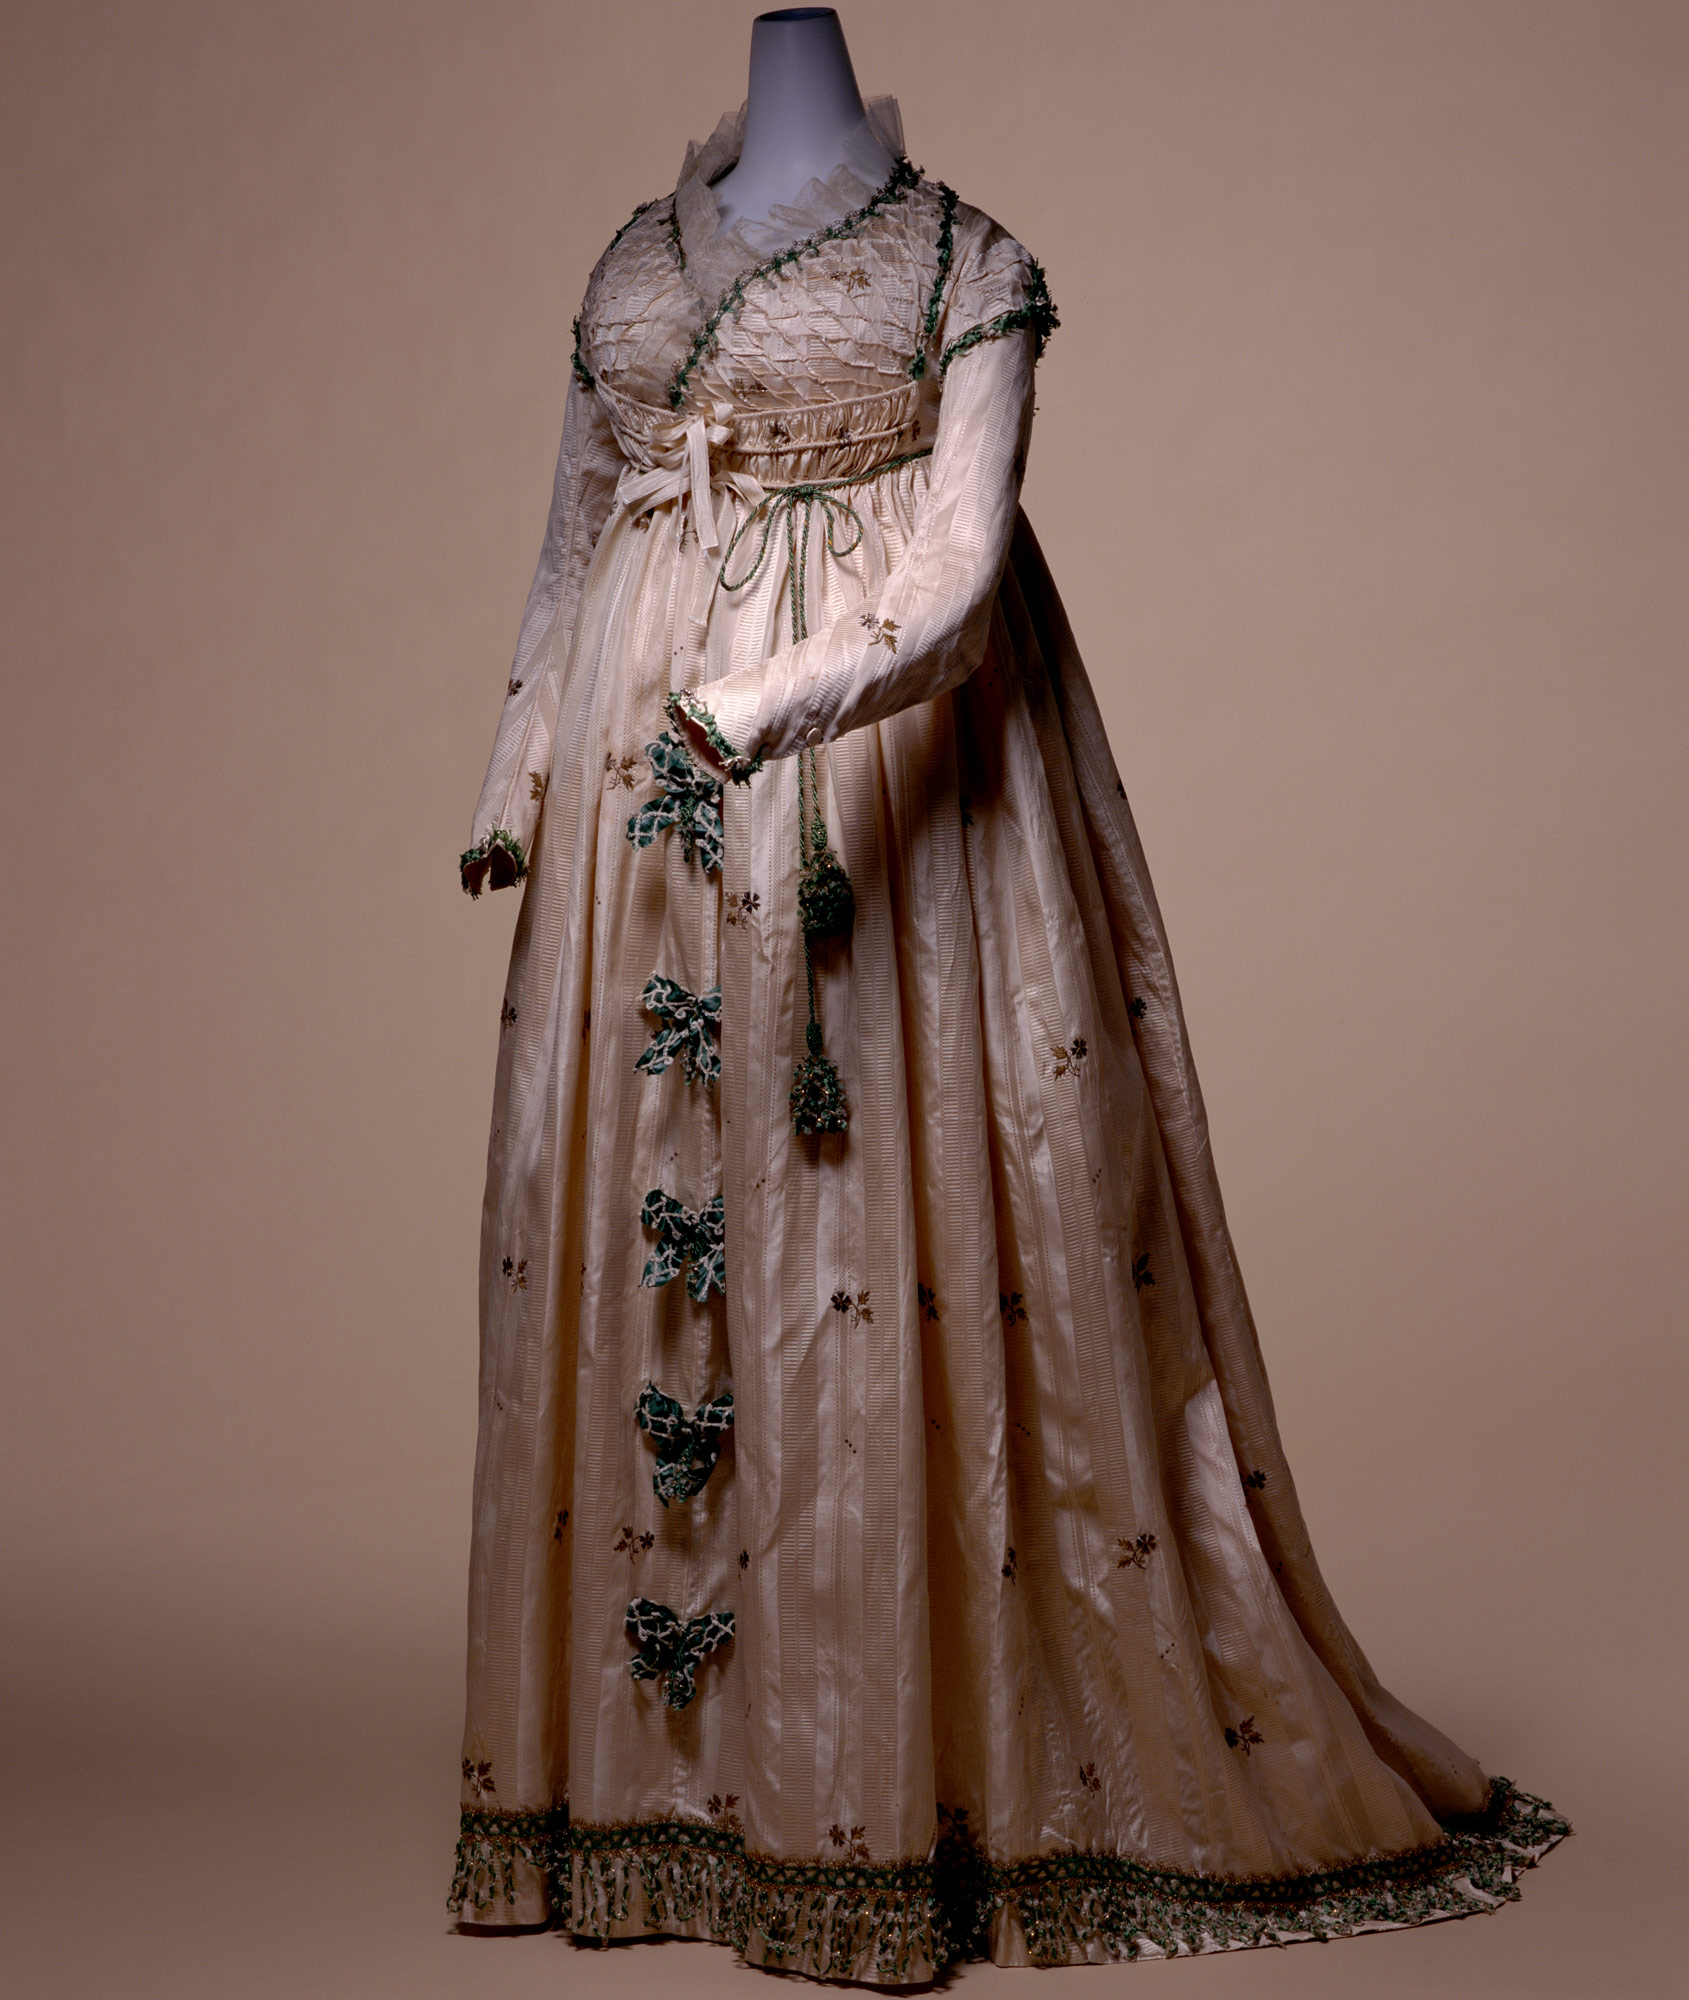 Robe Adalah: Beauty Fashionista: THE PERIOD OF FASHION 17th CENTURY